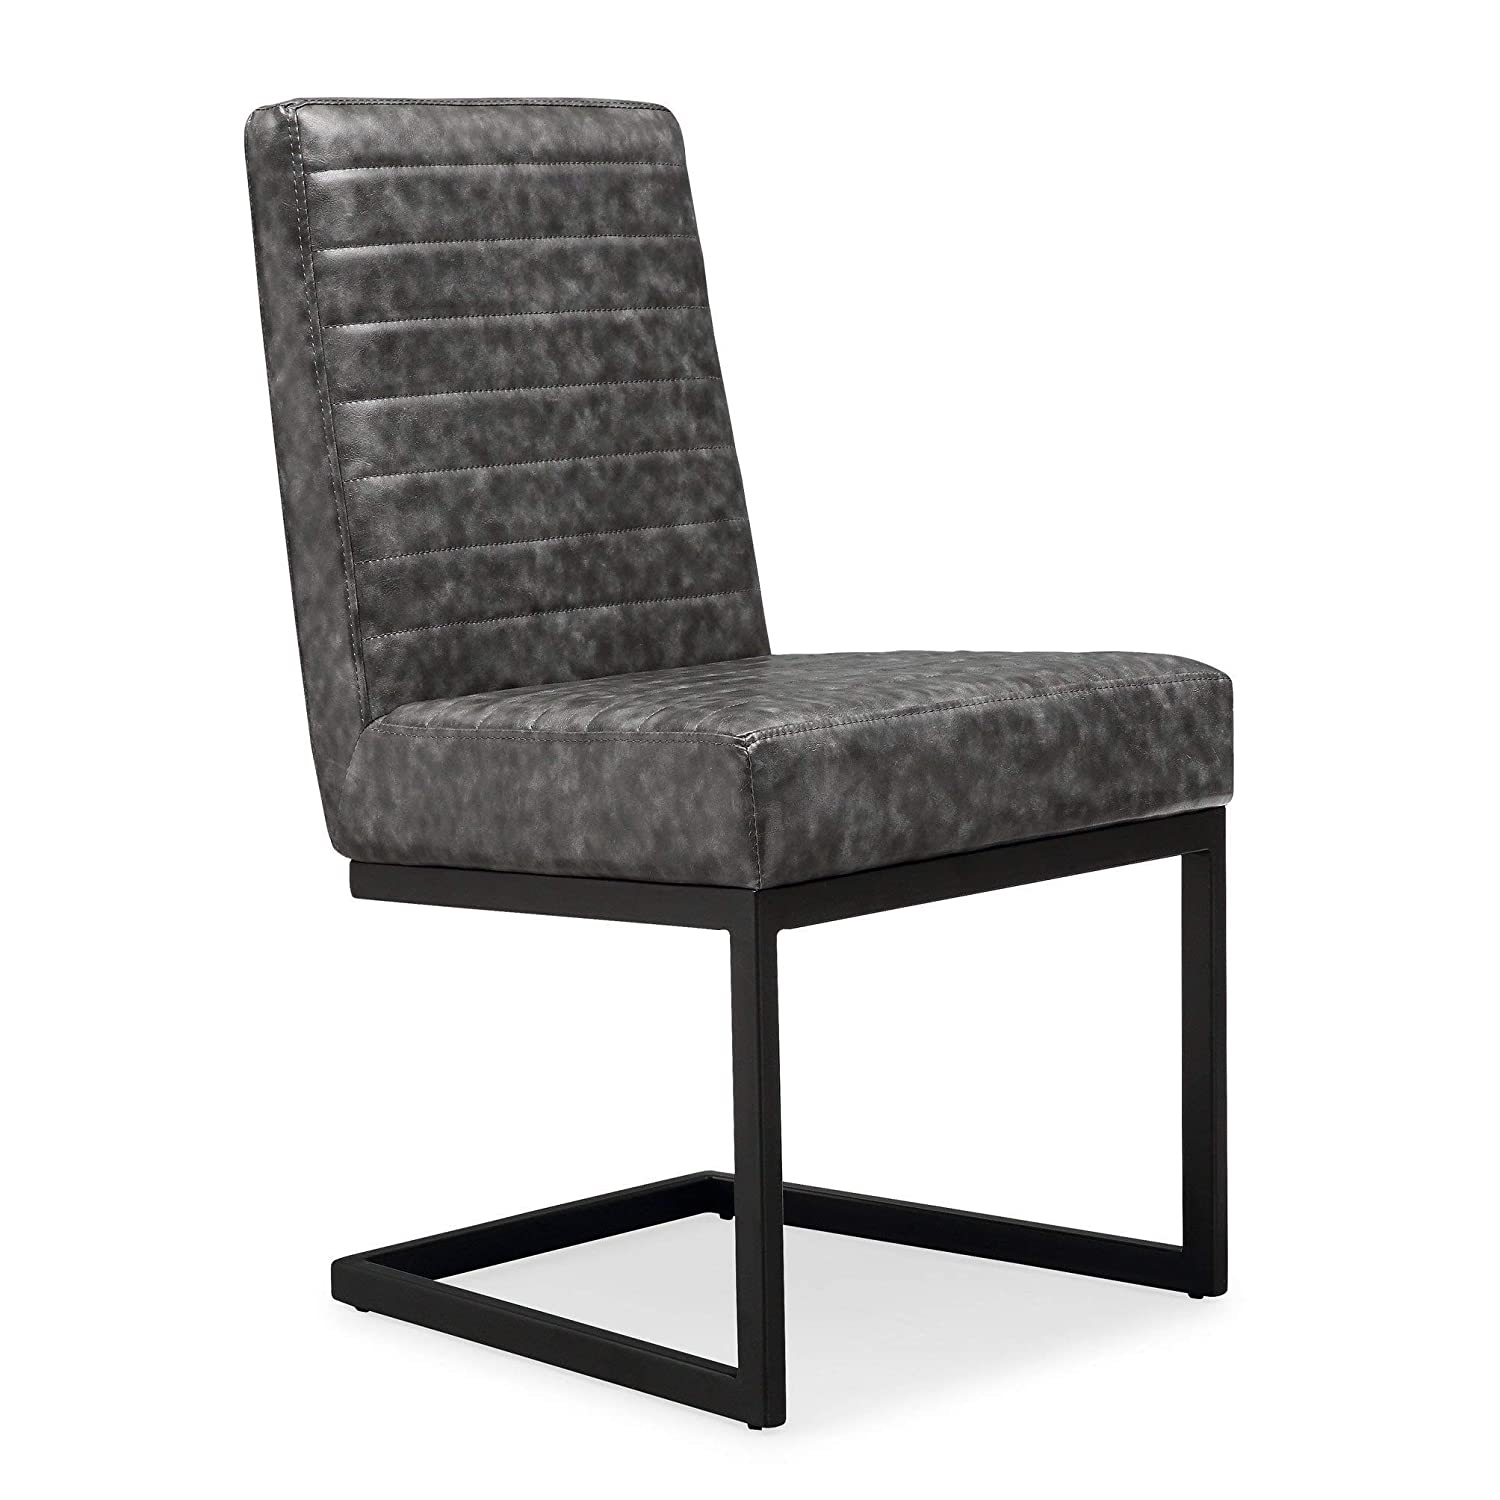 Amazon com tov furniture the austin collection modern industrial eco leather upholstered steel base dining chair set of 2 grey with black base chairs